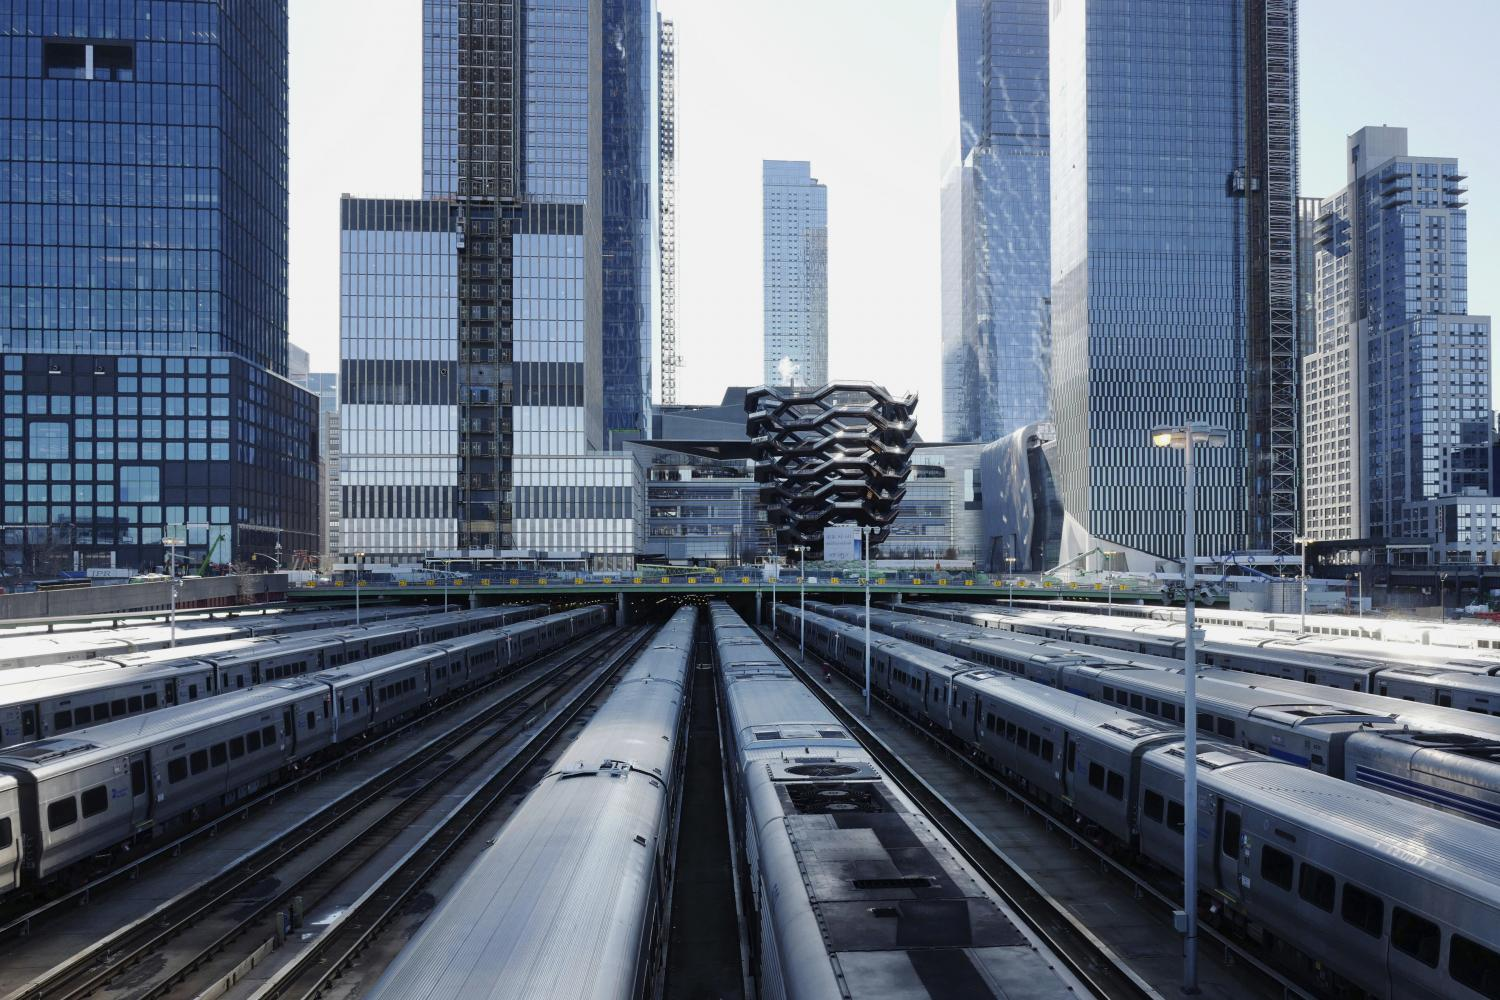 This photo taken on April 1, 2019 shows the Long Island Railroad storage yards and buildings at Hudson Yards in New York. Amazon.com Inc has signed a lease for a new office space in Manhattan that will house more than 1,500 employees, less than a year after pulling out of a deal for a larger headquarters in the borough of Queens.(AP photo)